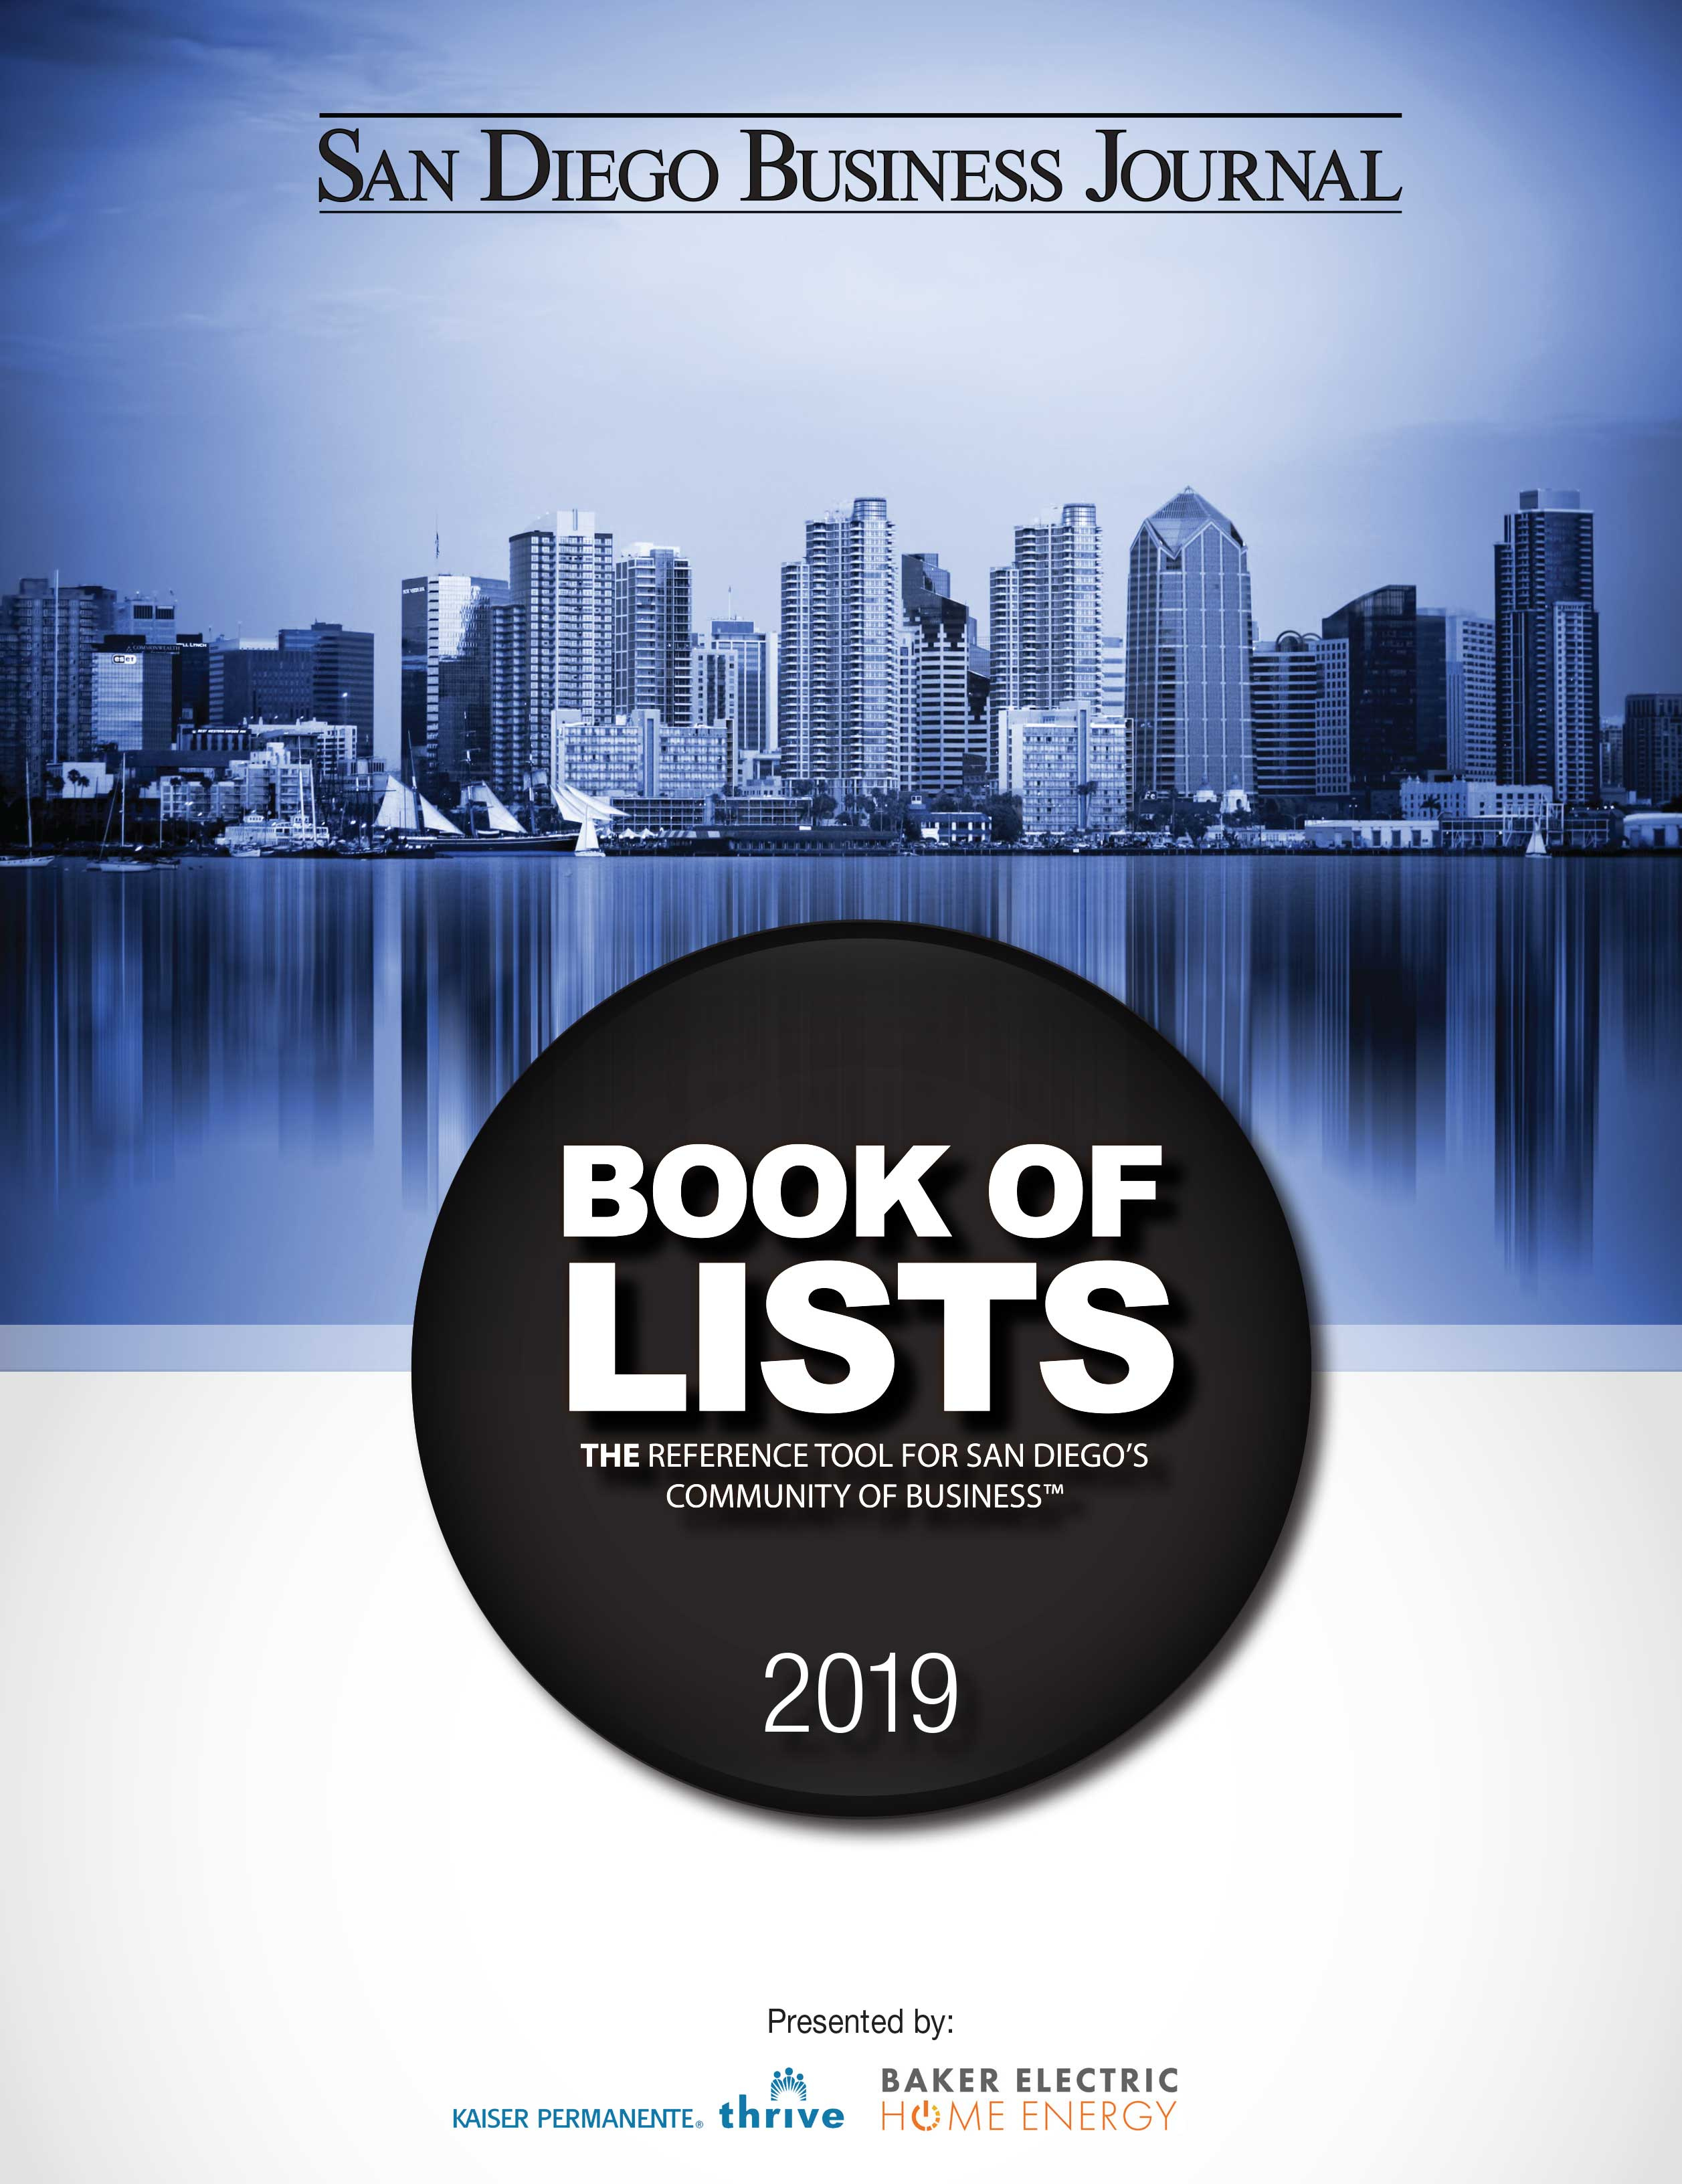 SDBJ Book of Lists | San Diego Business Journal